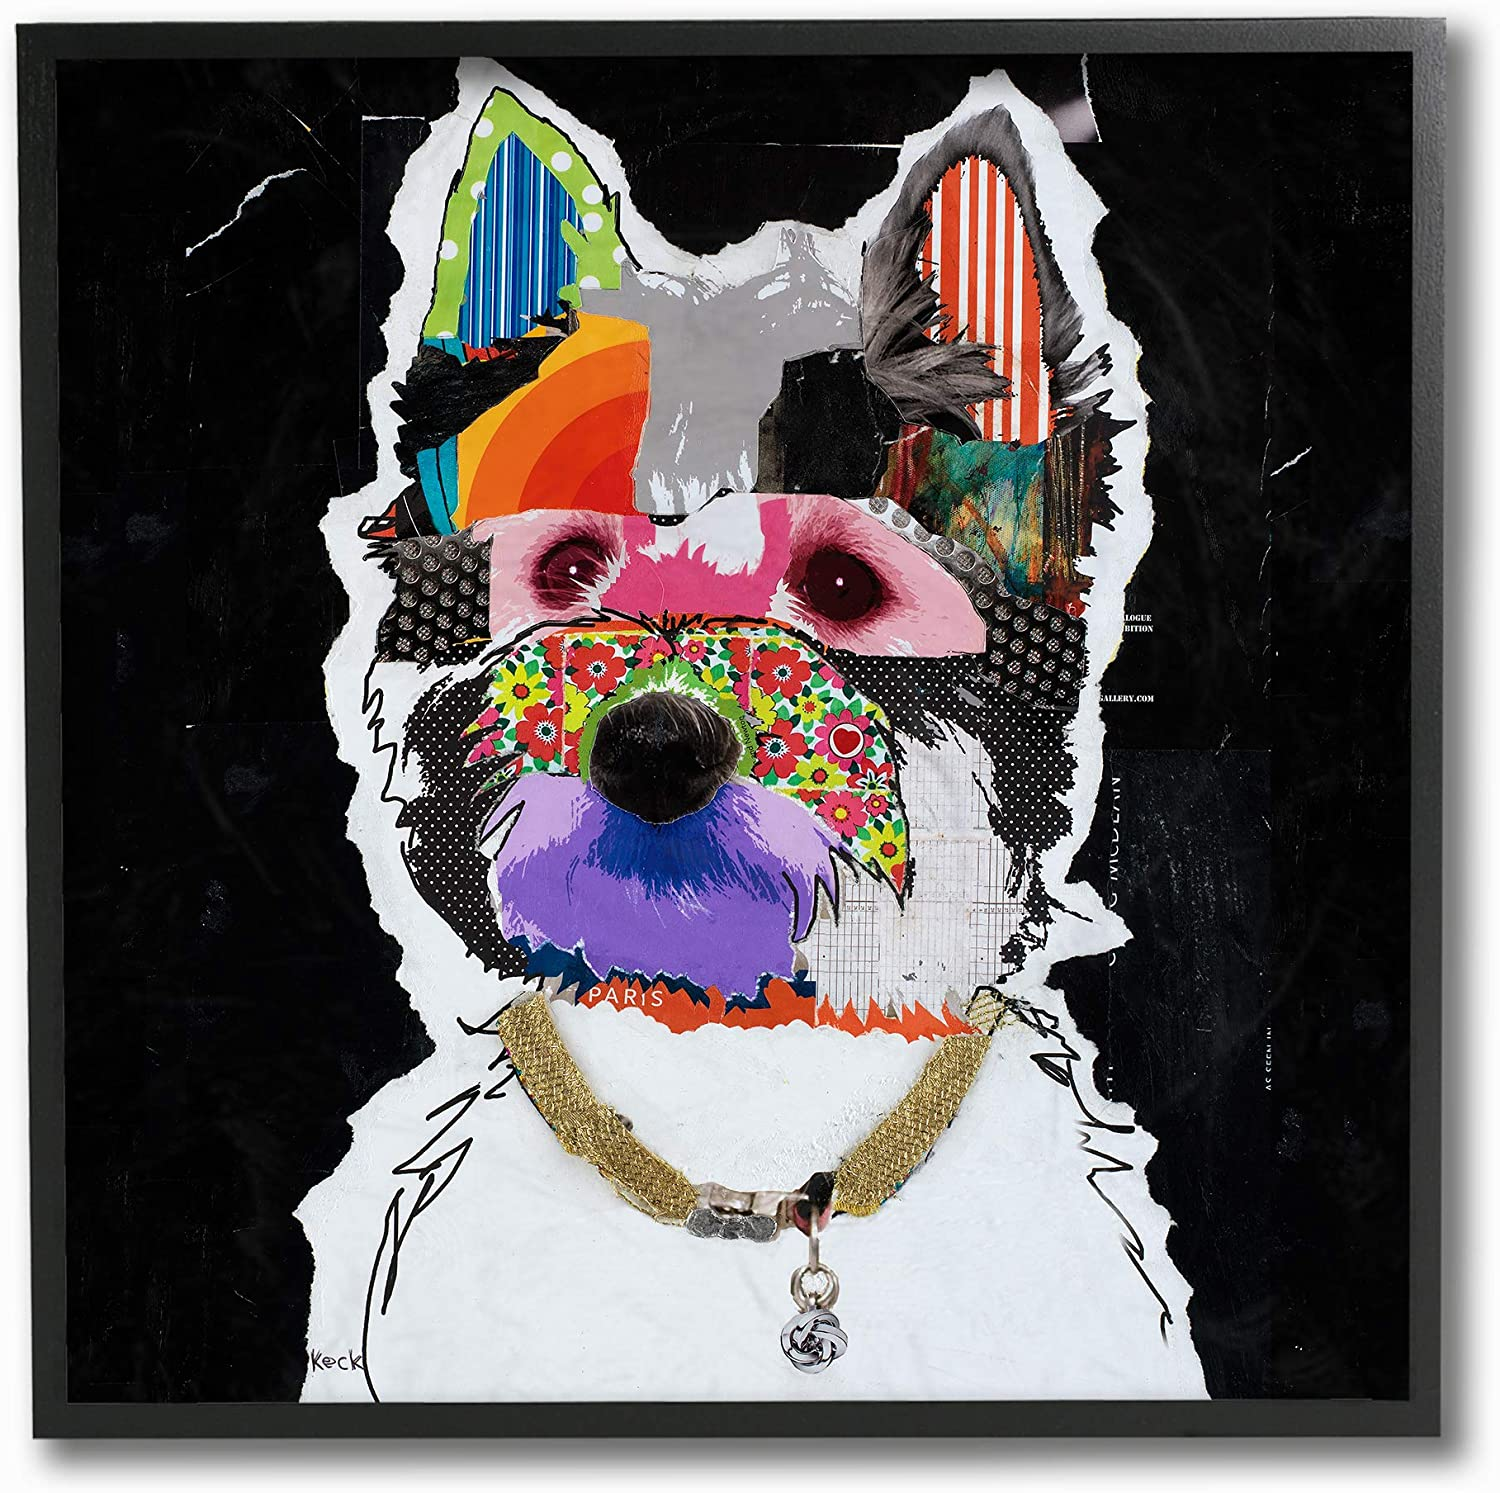 The Stupell Home Decor Paint Splatter color Block West Highland Terrier Portrait Framed Giclee Texturized Art, 12 X 12, Multi